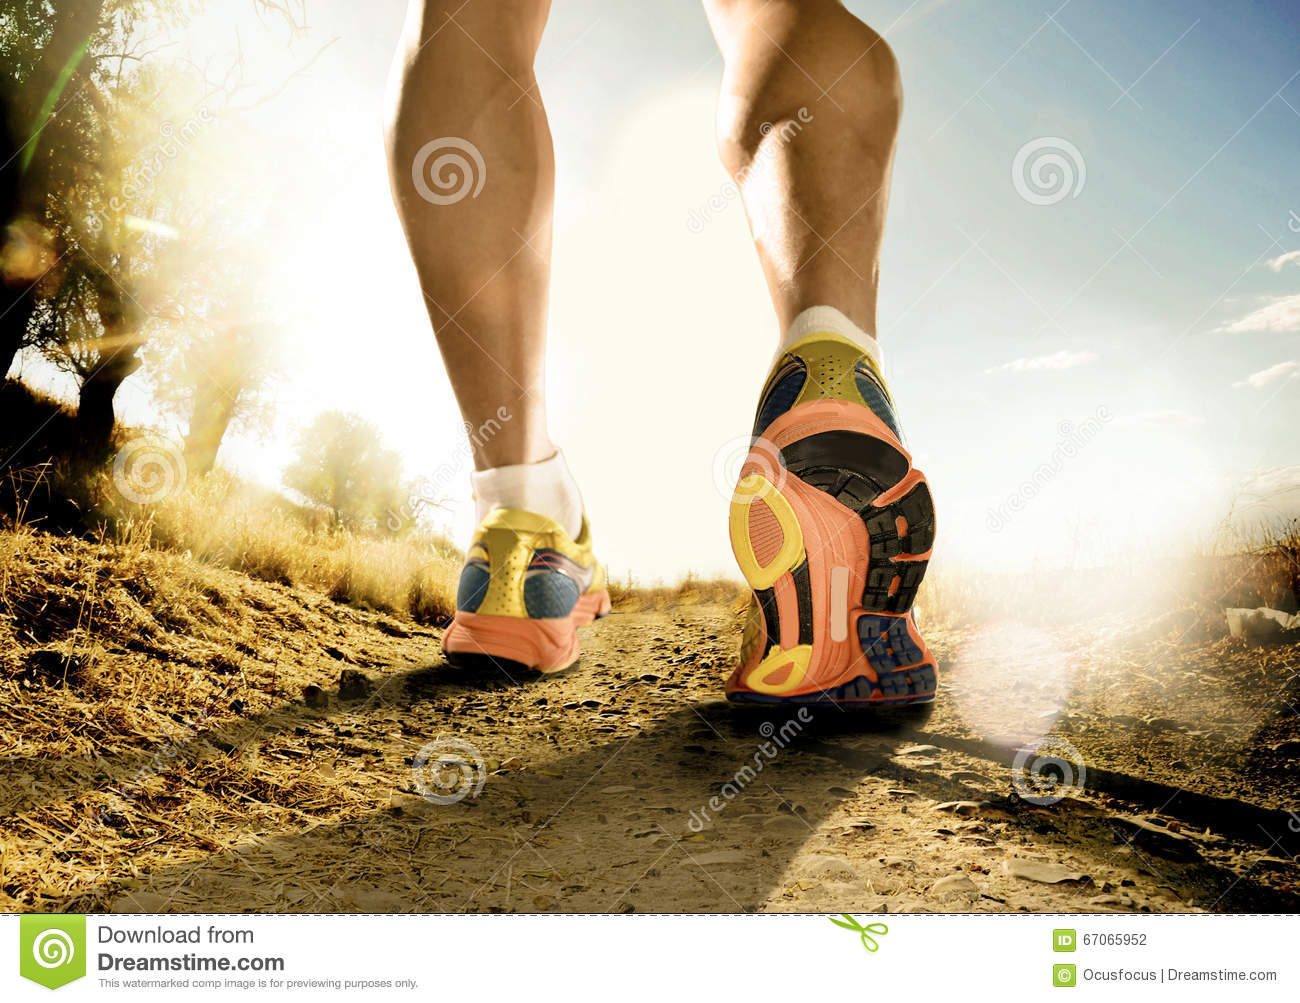 Download Strong Legs And Shoes Of Sport Man Jogging In Fitness Training Workout On Off Road Stock Photo - Image of race, competition: 67065952